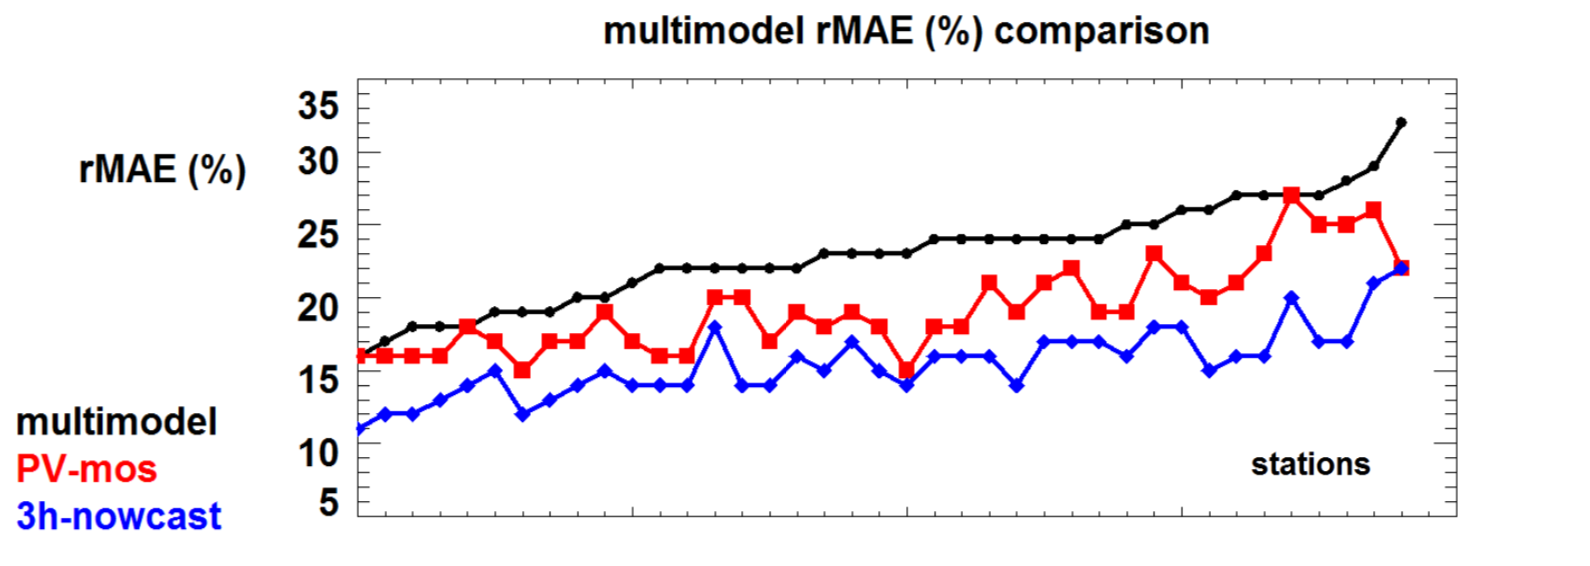 multimodel-rMAE-comparision